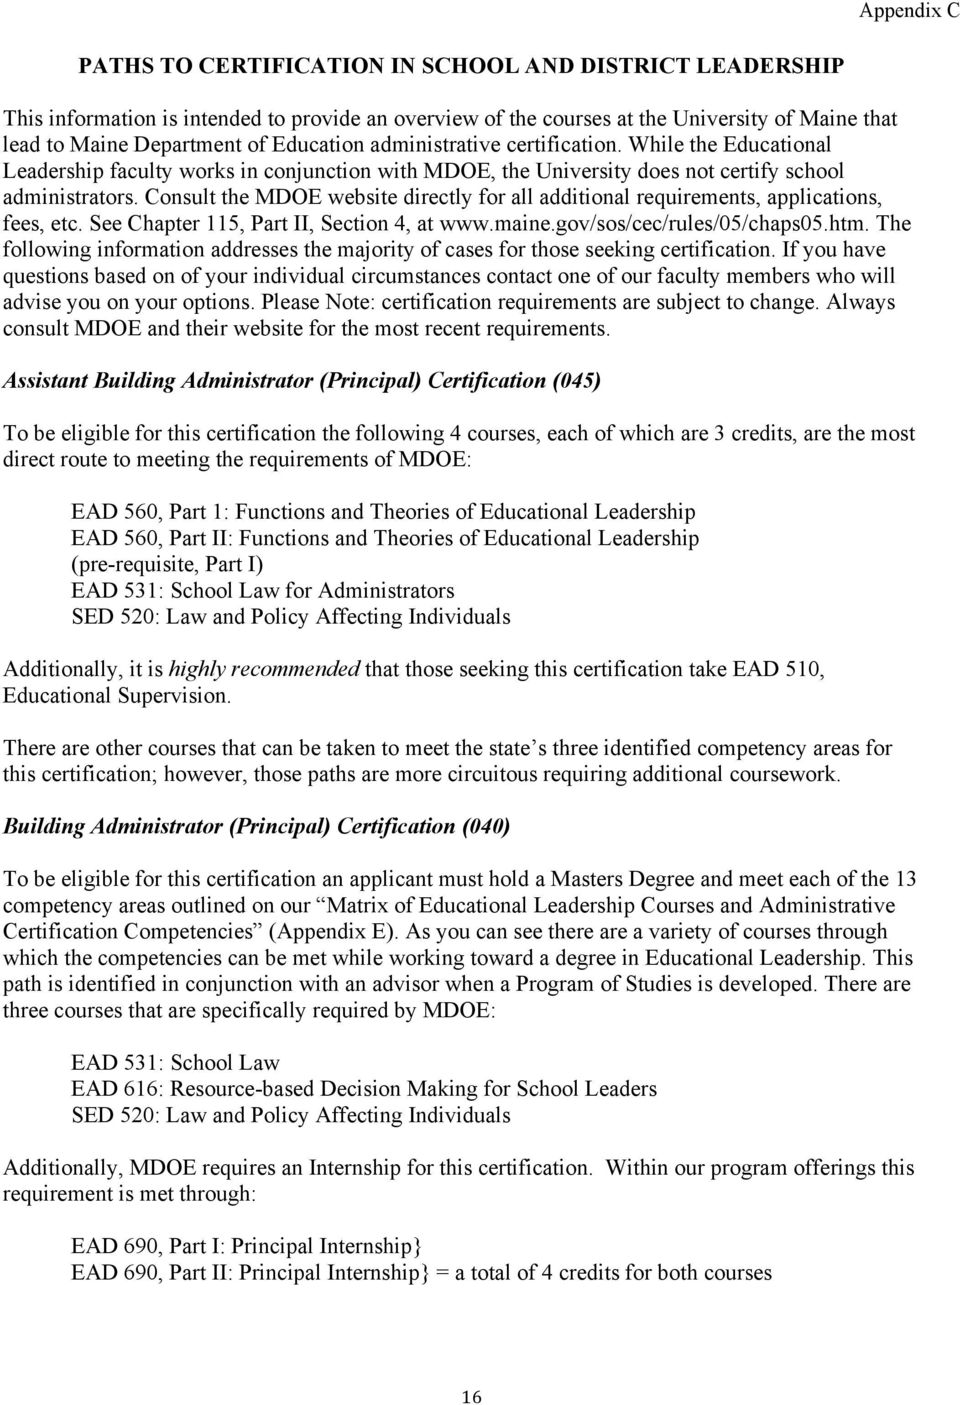 Consult the MDOE website directly for all additional requirements, applications, fees, etc. See Chapter 115, Part II, Section 4, at www.maine.gov/sos/cec/rules/05/chaps05.htm.